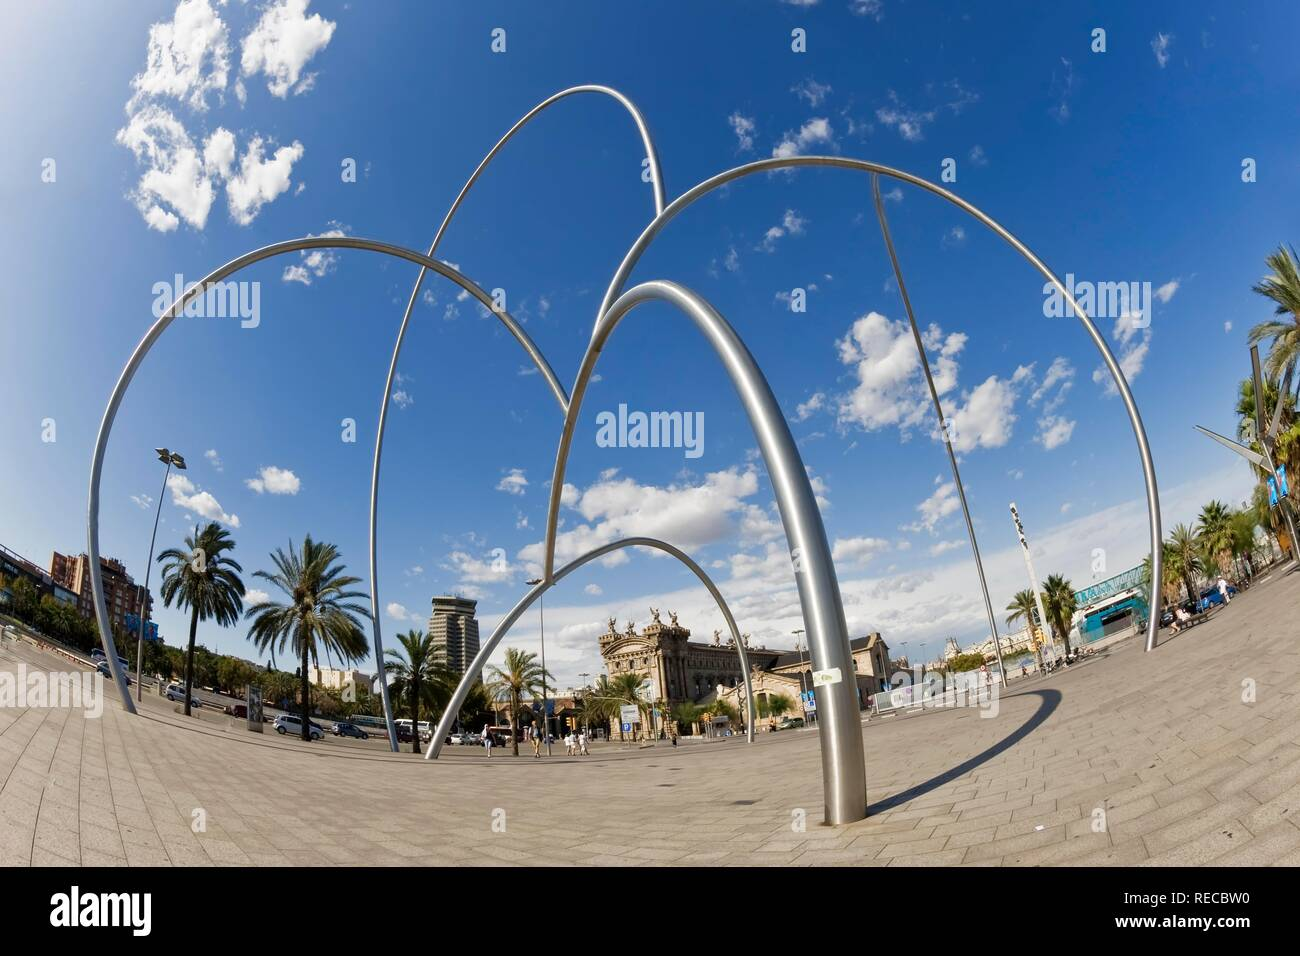 ´Ones´ sculpture by Andreu Alfaro at Barcelona port, Catalonia, Spain, Europe - Stock Image